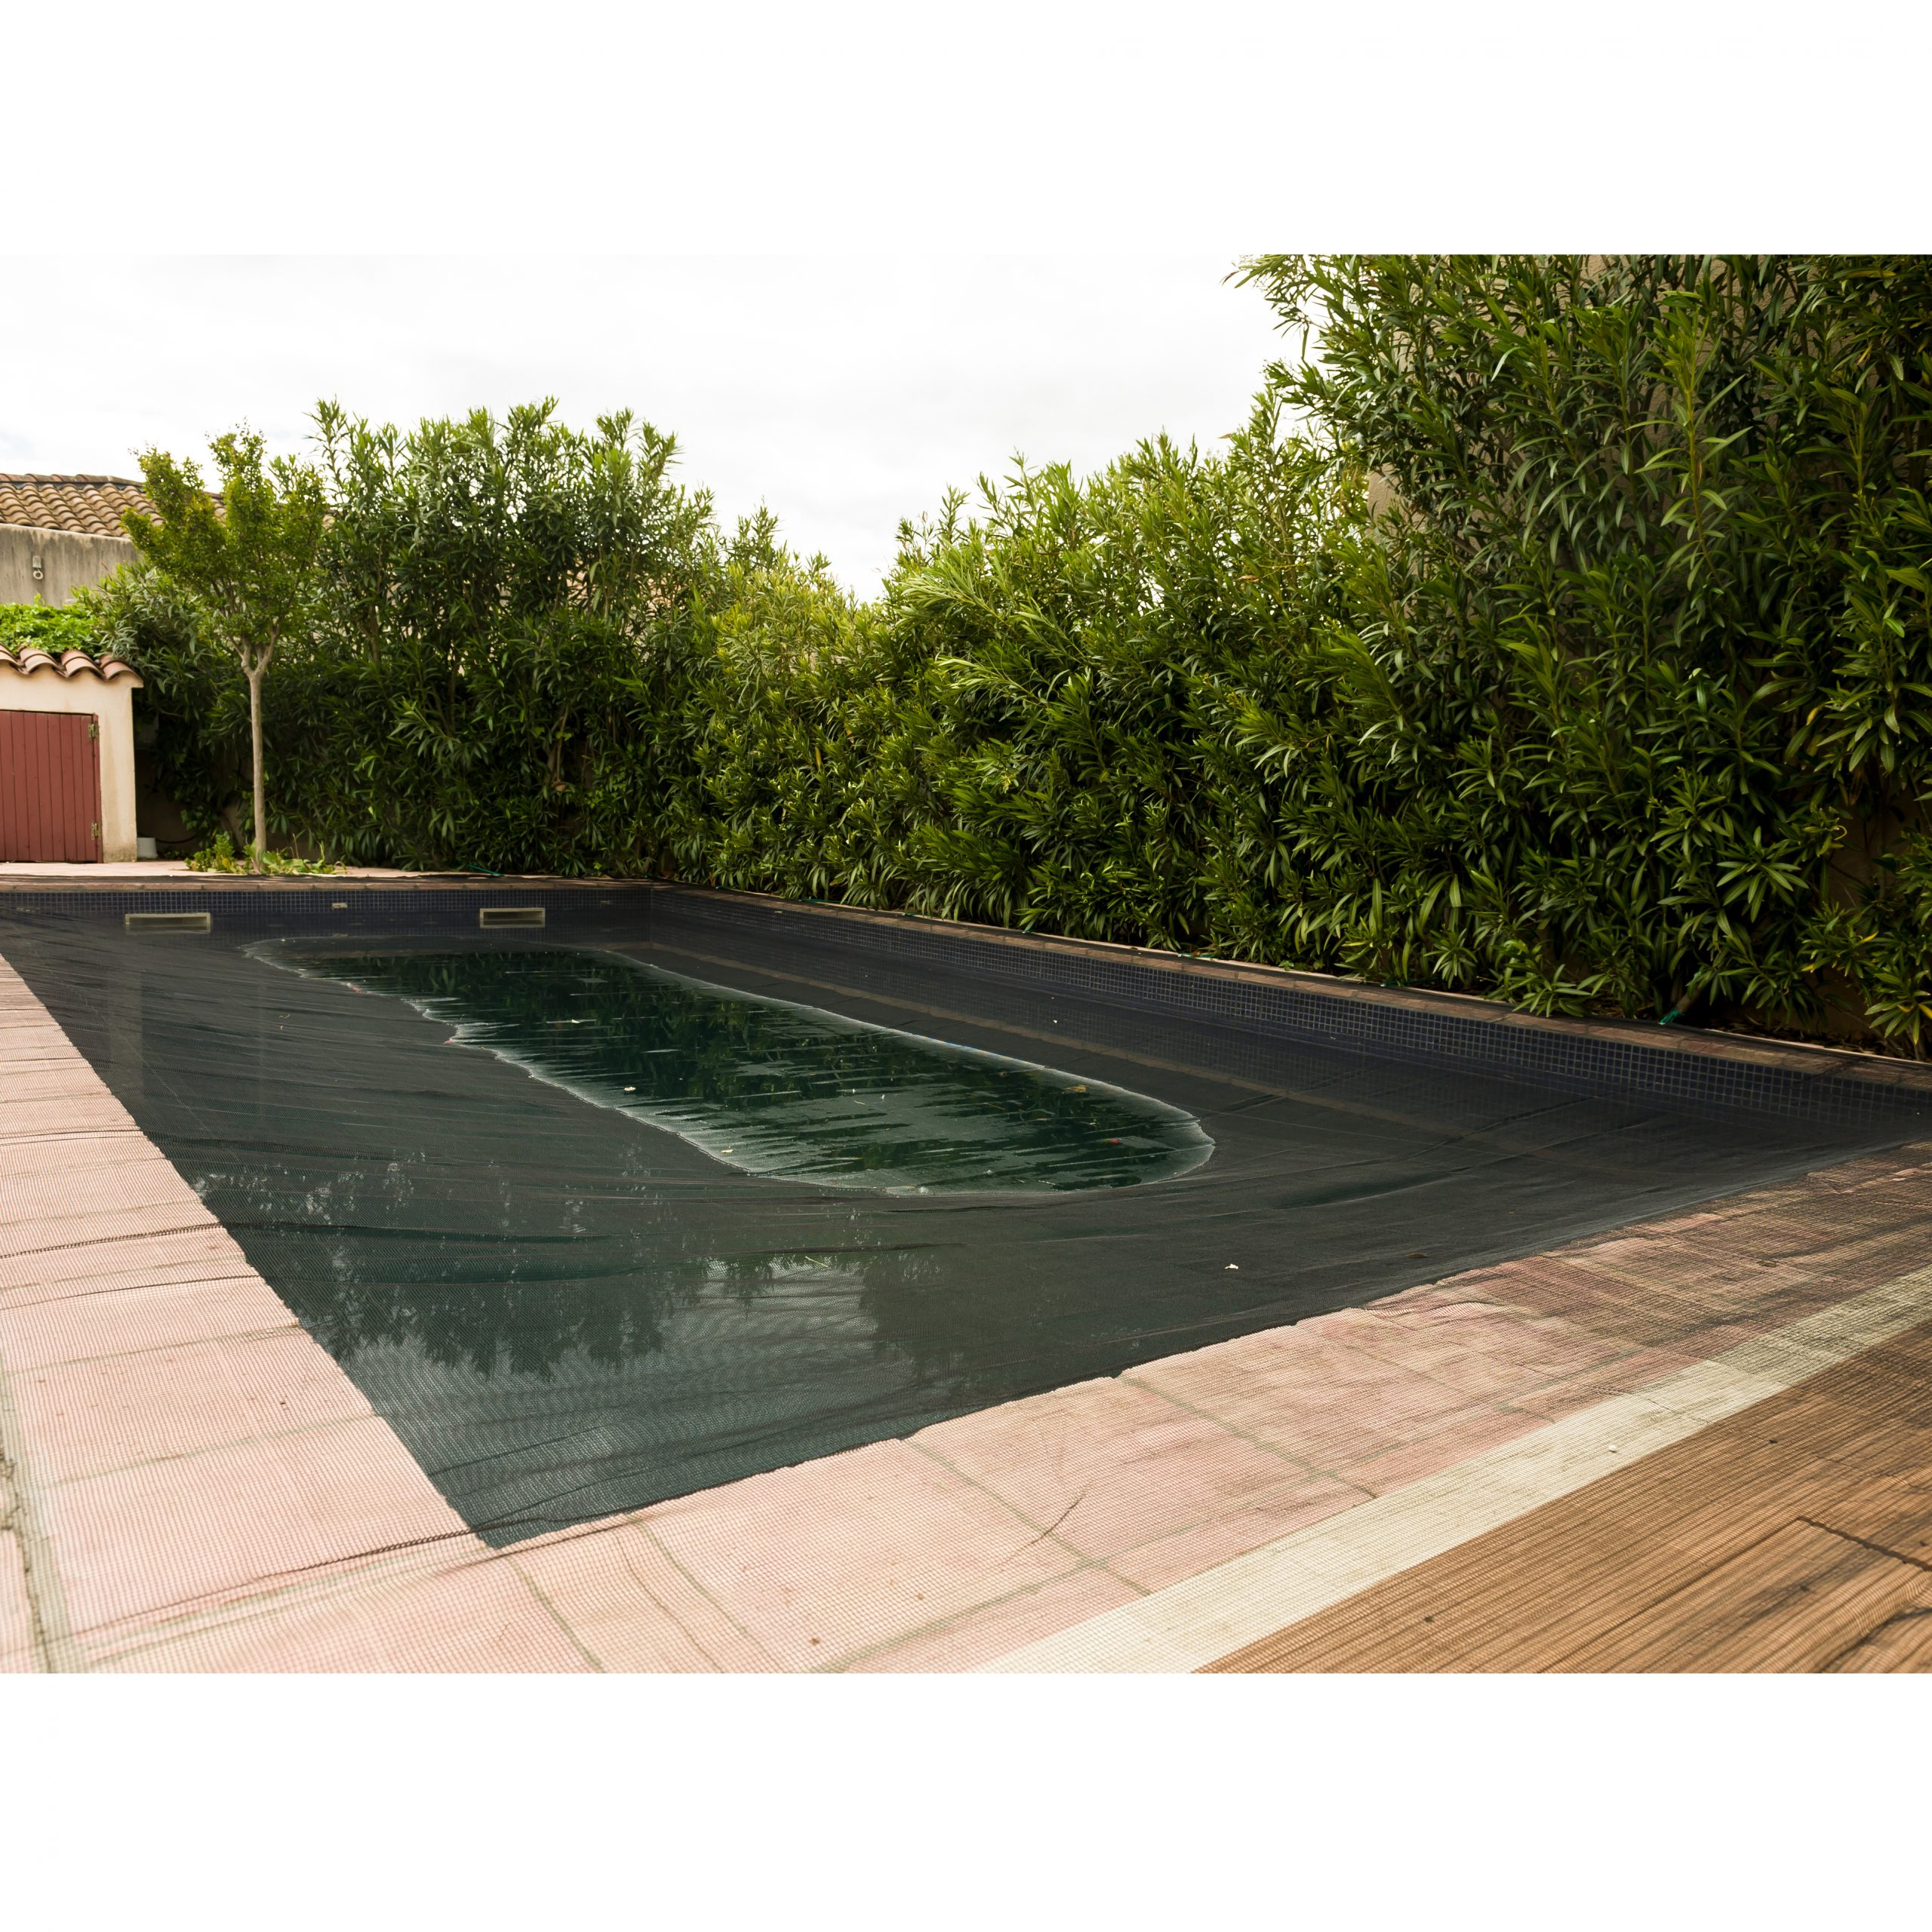 Filet De Protection Piscine 100G/m² Werkapro (4X7M) concernant Filet Protection Piscine